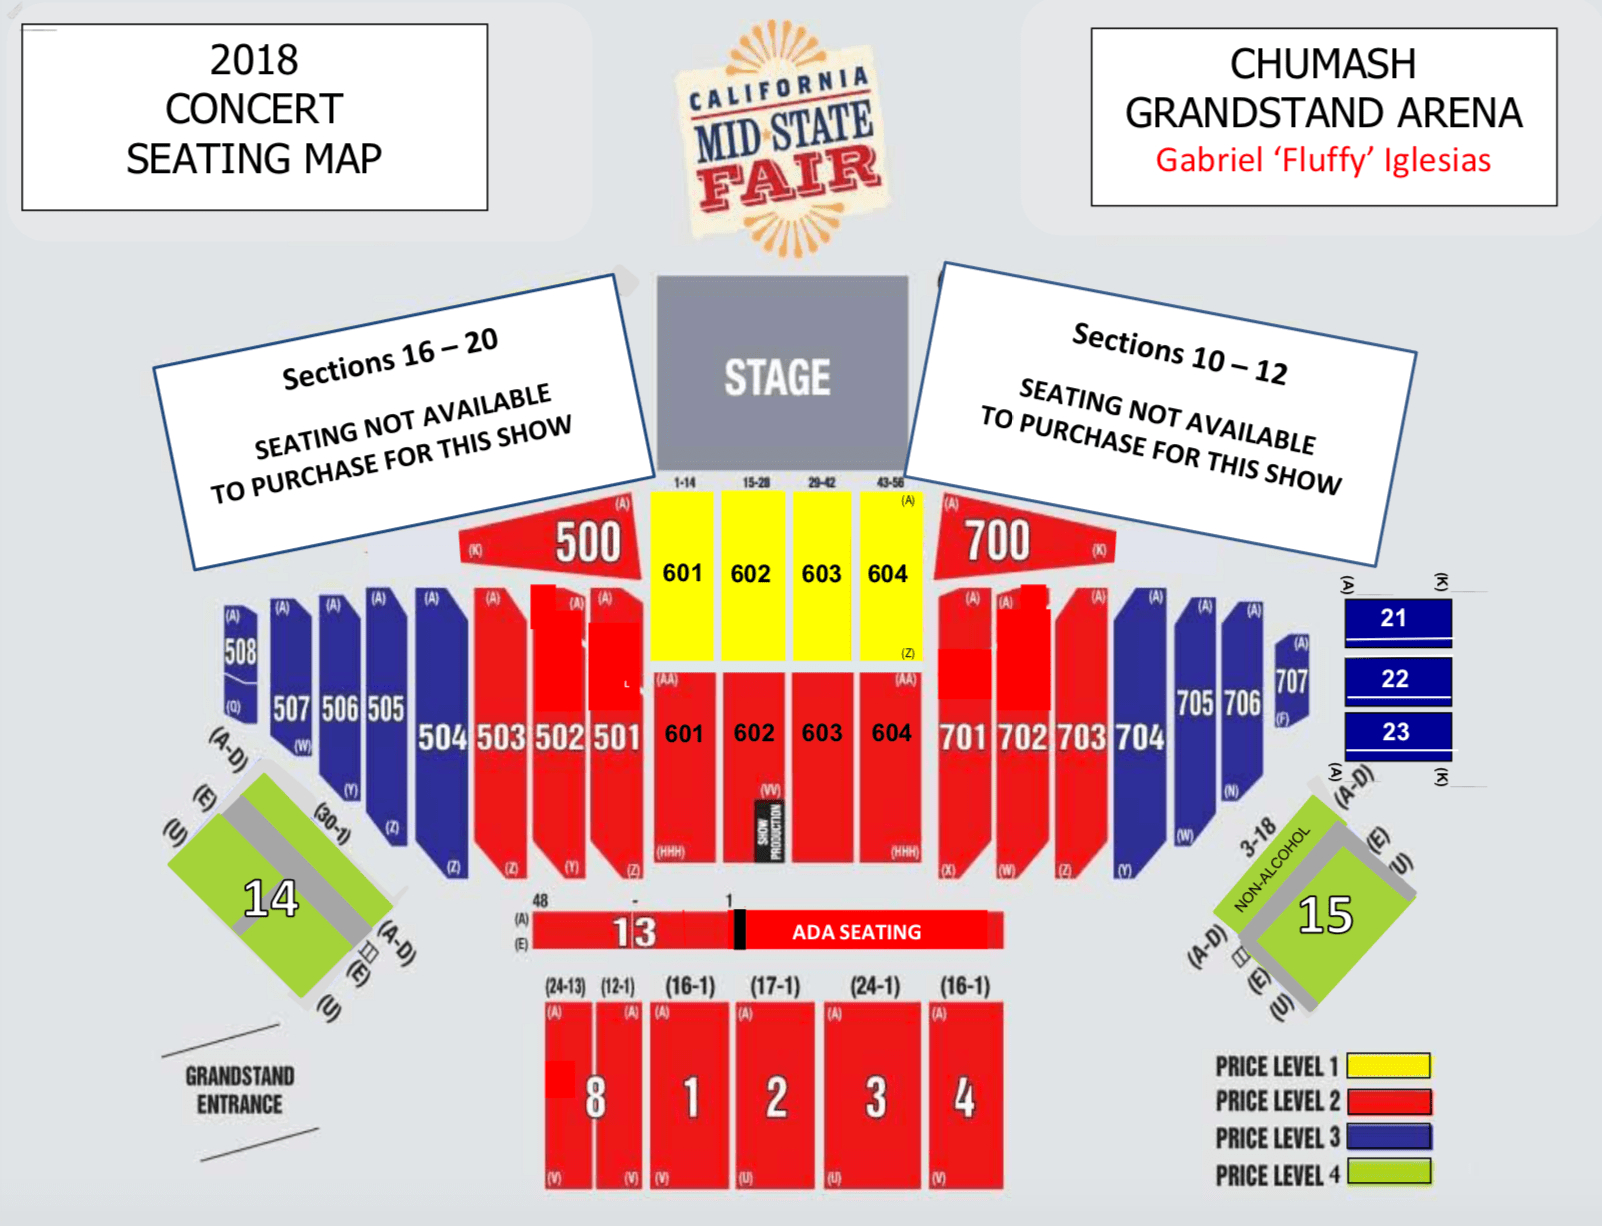 California Mid State Fair Seating Chart - Map Of California Mid State Fair